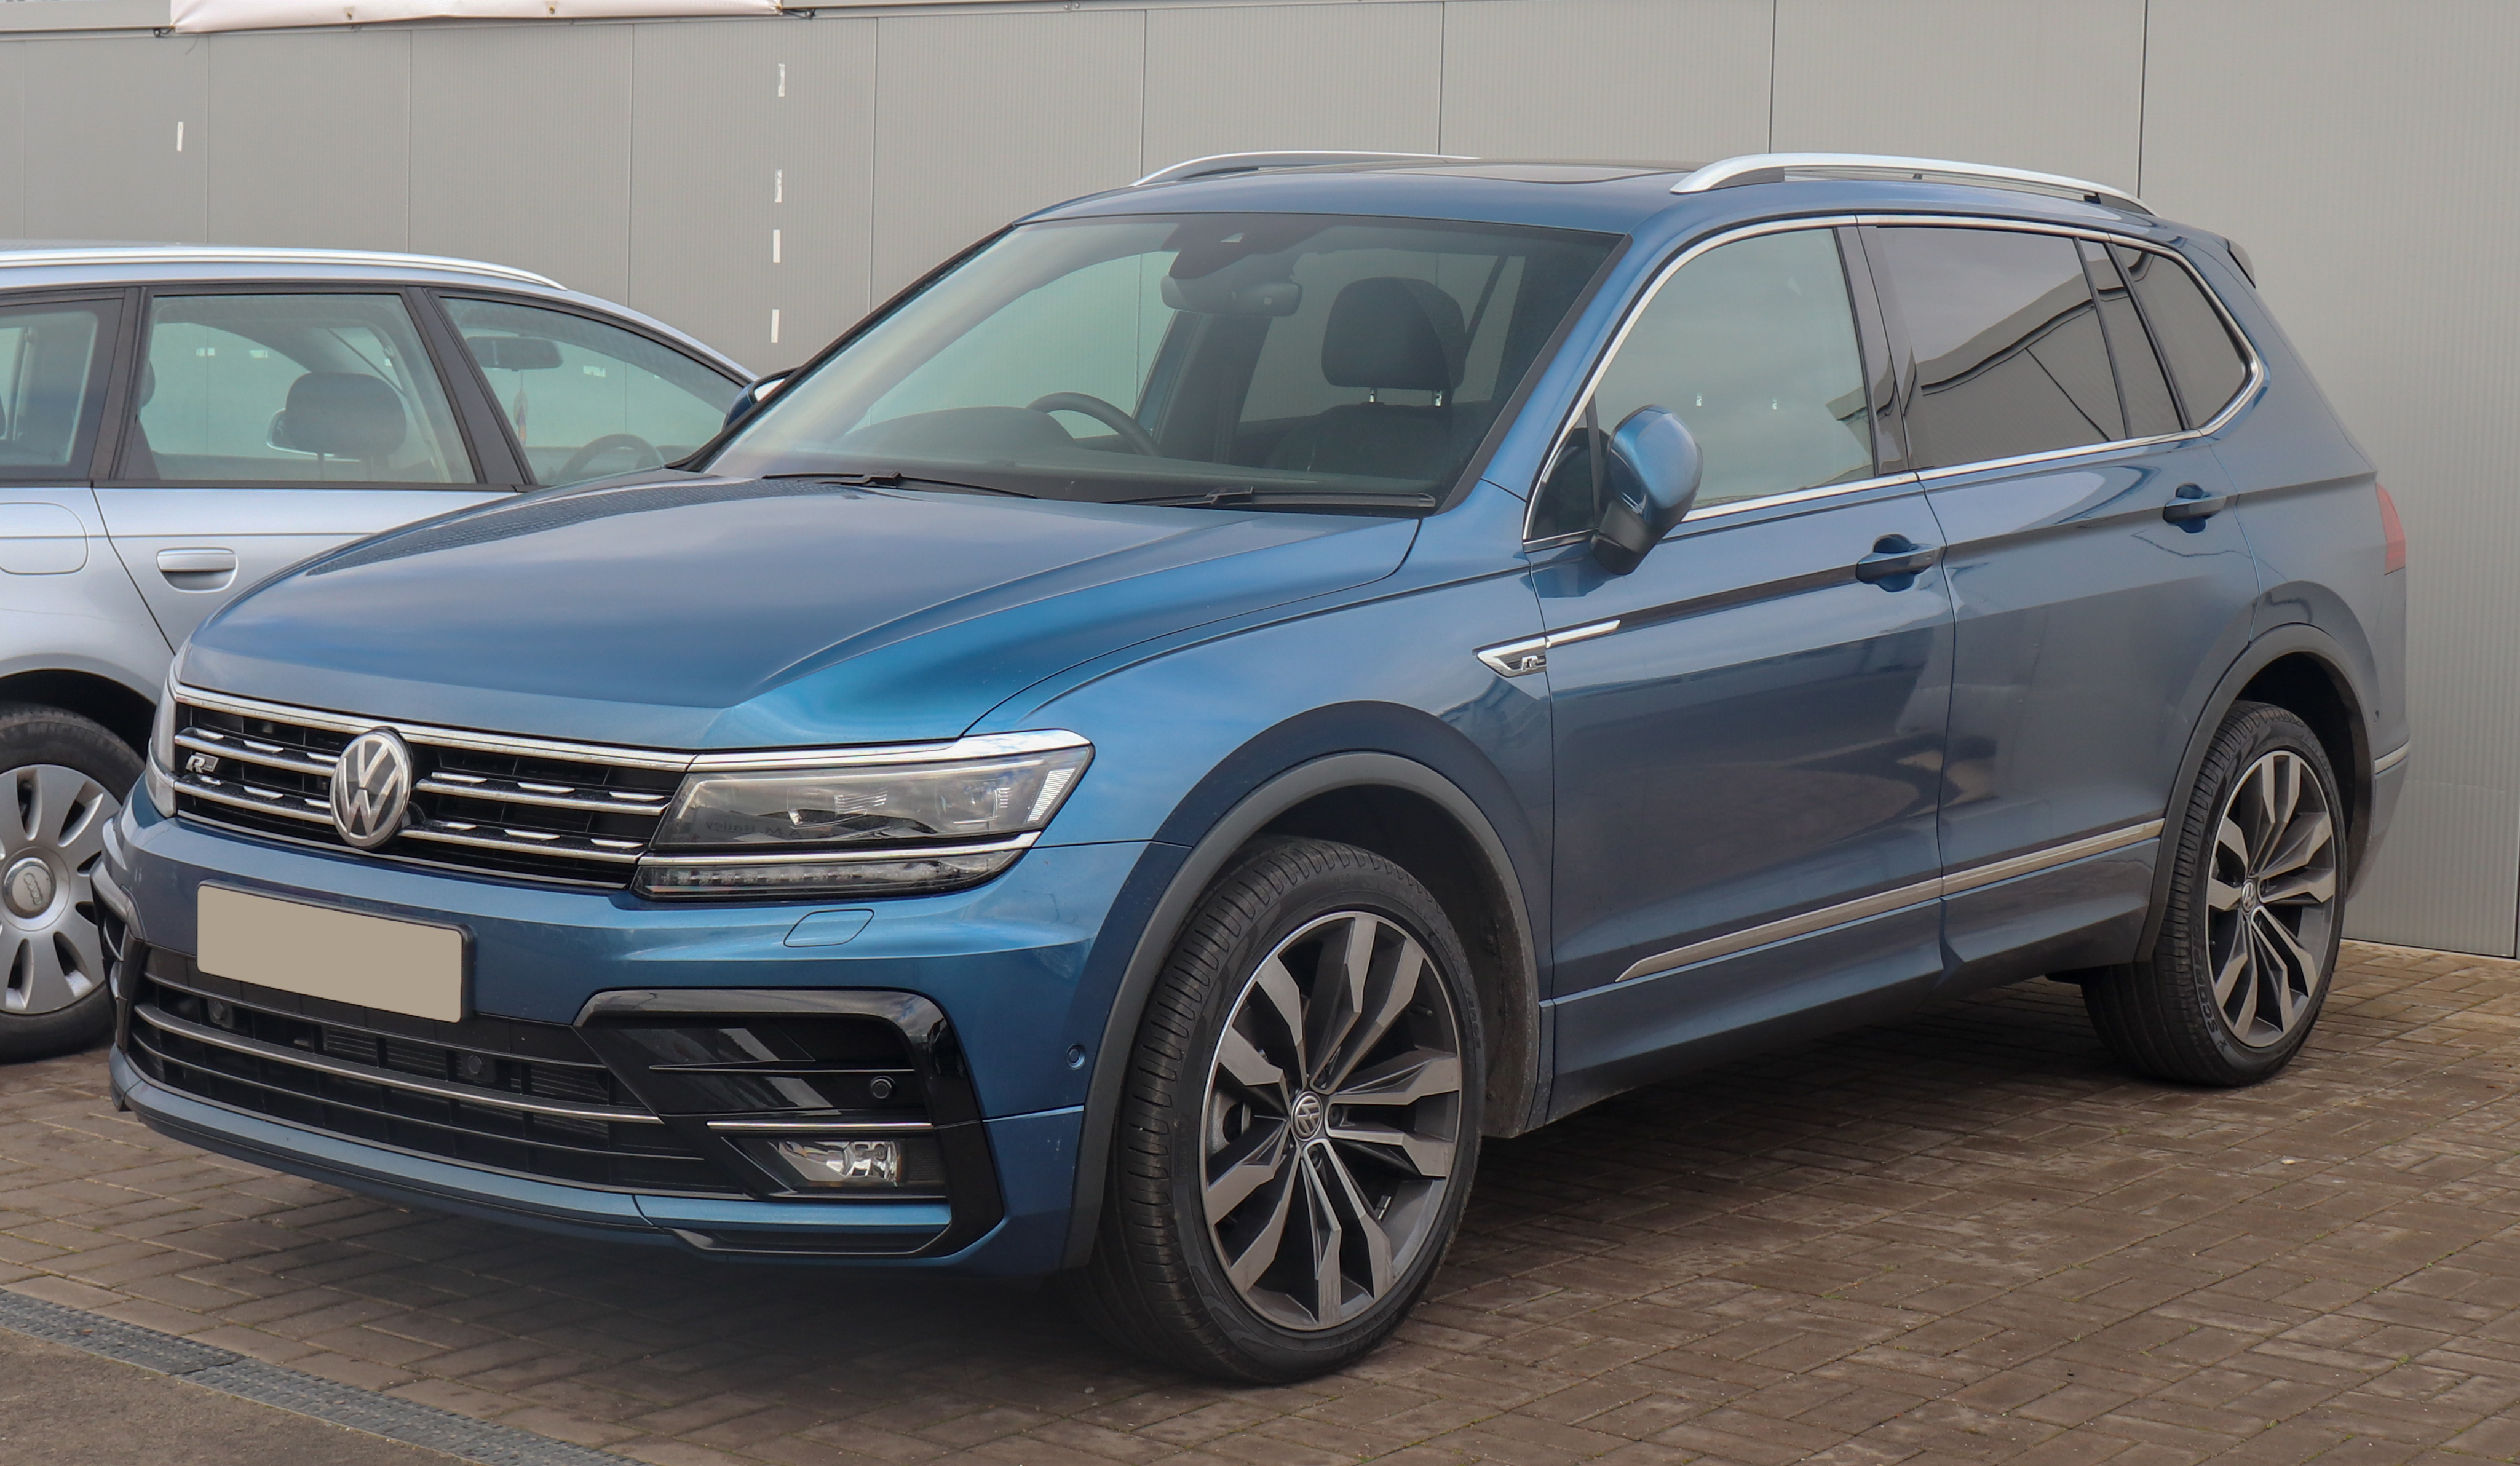 file 2019 volkswagen tiguan allspace r line tdi 4motion 2 wikimedia commons. Black Bedroom Furniture Sets. Home Design Ideas